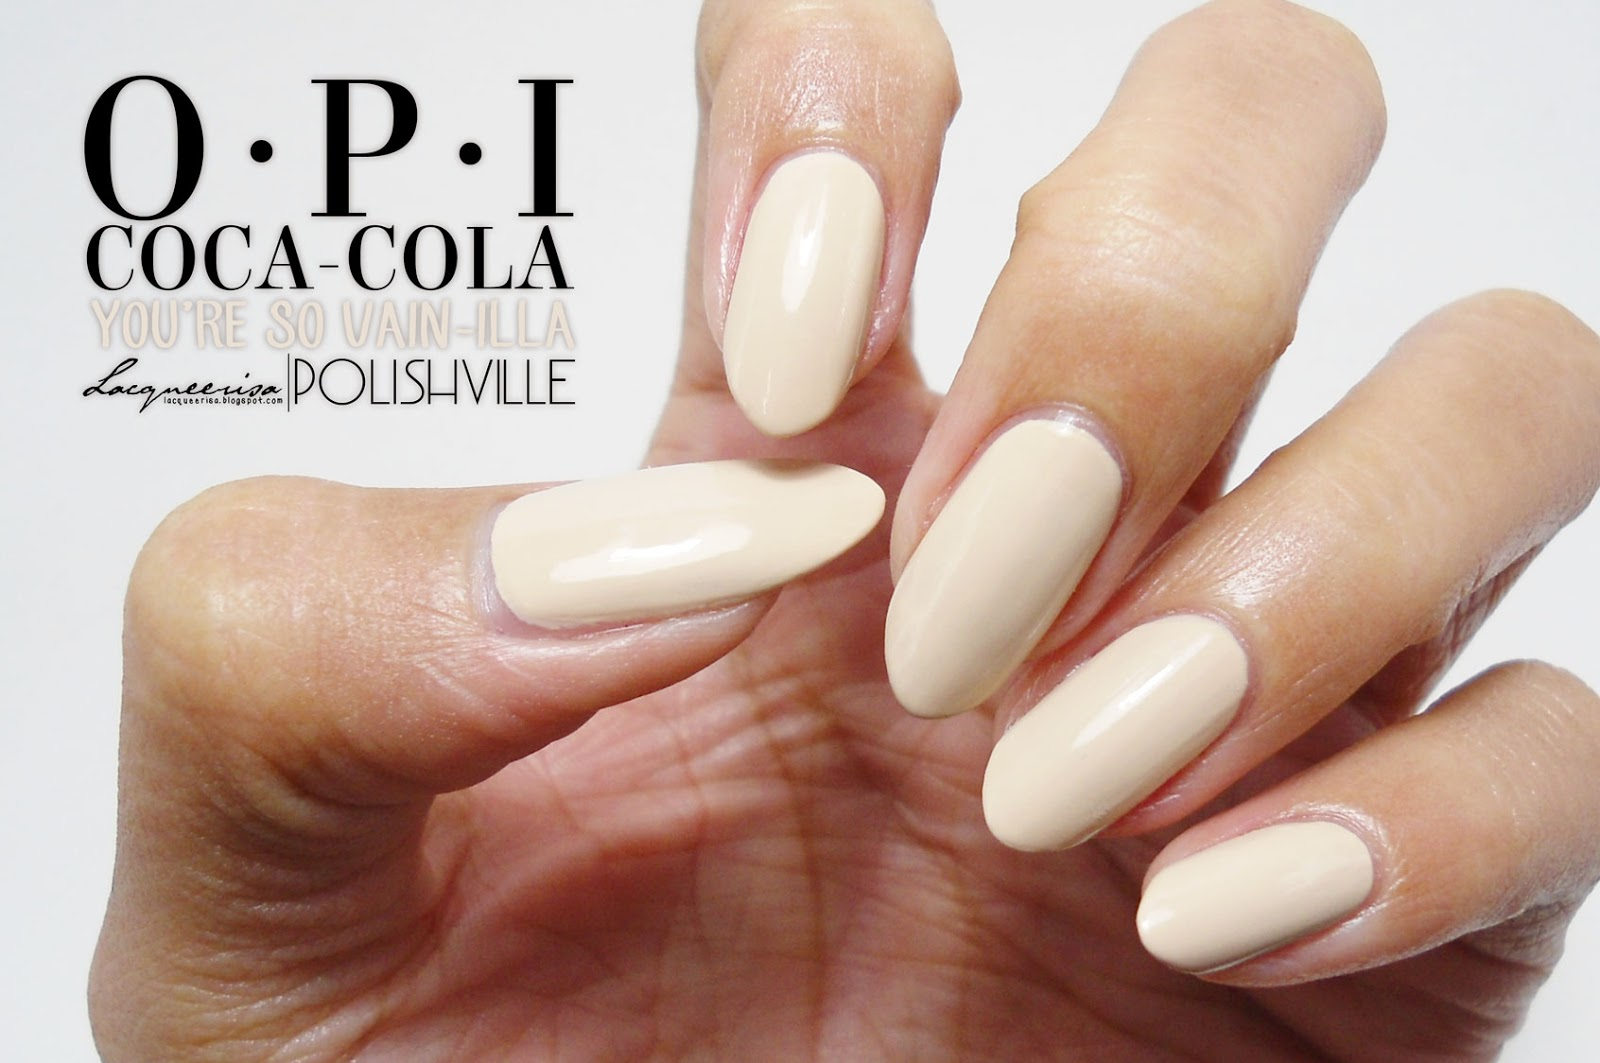 OPI You're So Vain-illa, LacqueerisaXPolishville